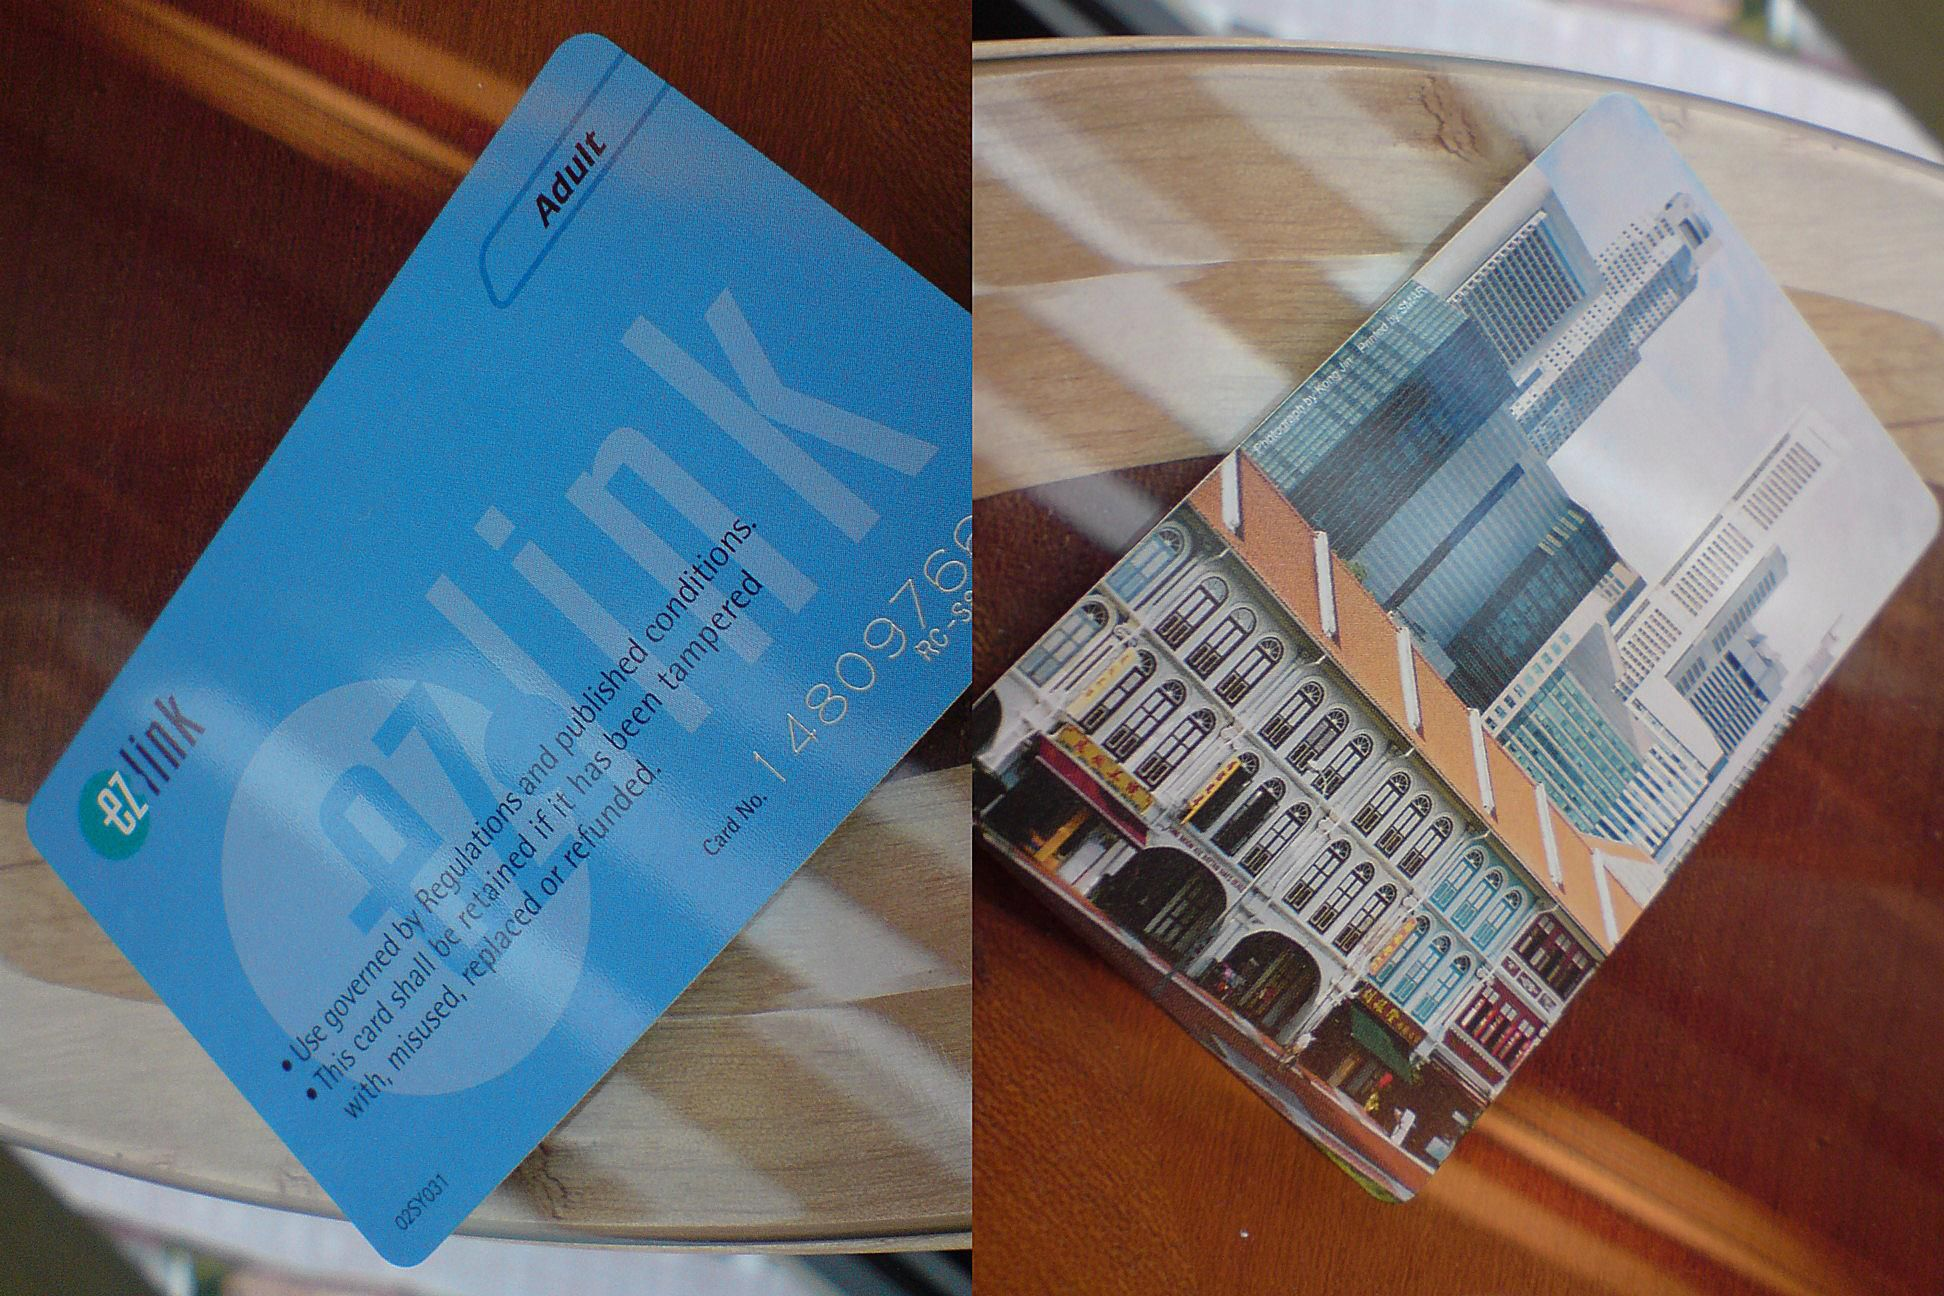 How Ez Link Cards Let You Travel Cheaply In Singapore